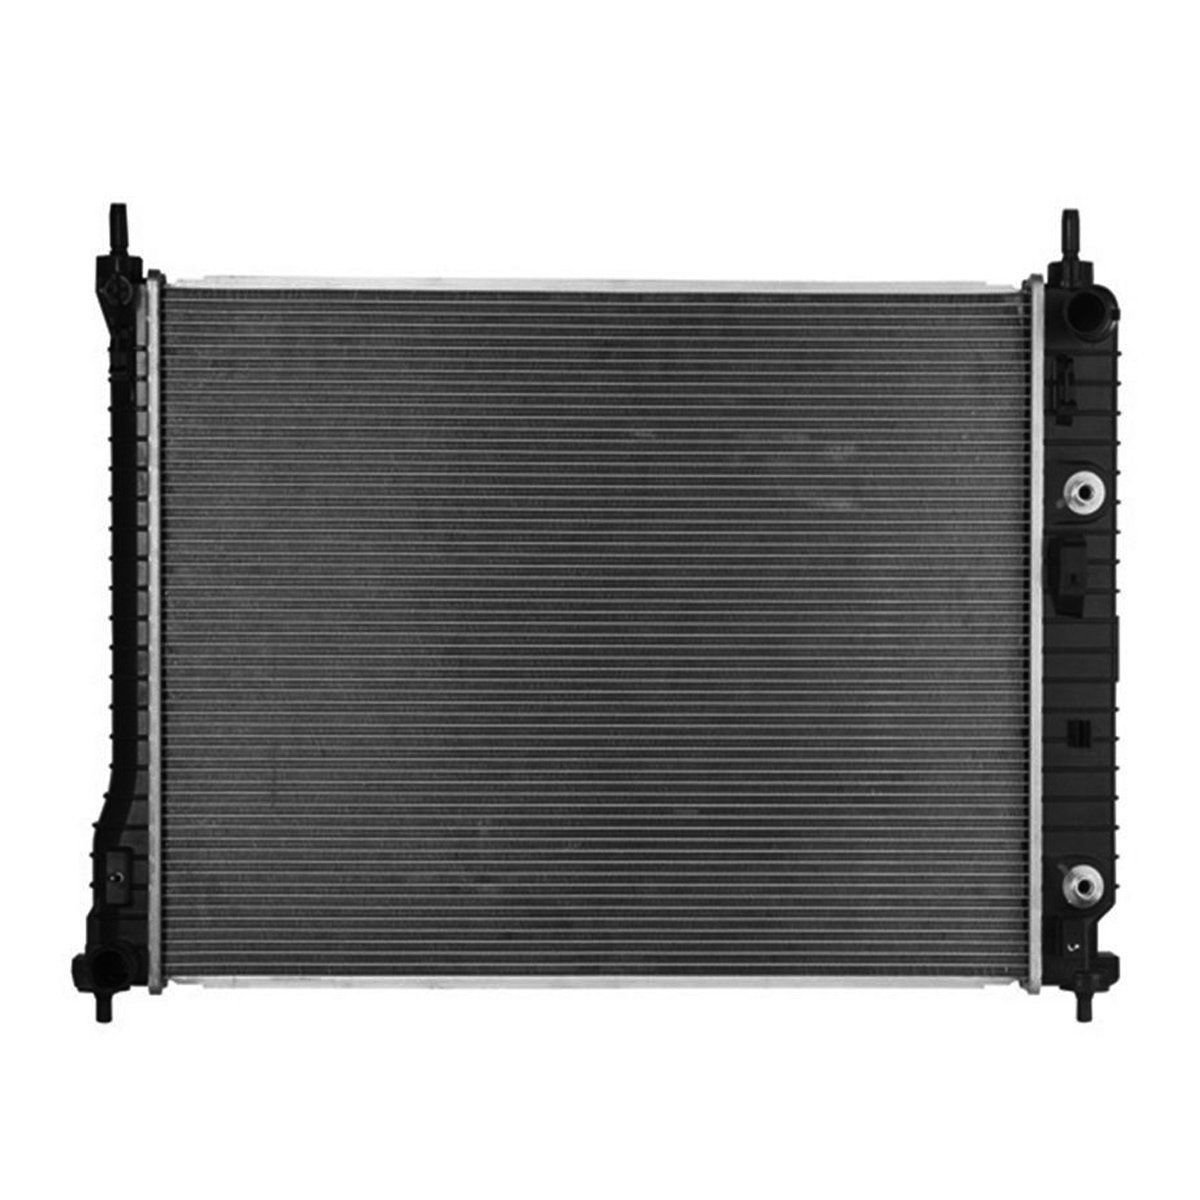 SCITOO Radiator 13057 for Captiva Sport Saturn Vue 2.0L 2.4L 3.6L 3.5L 2008-2015 by Scitoo